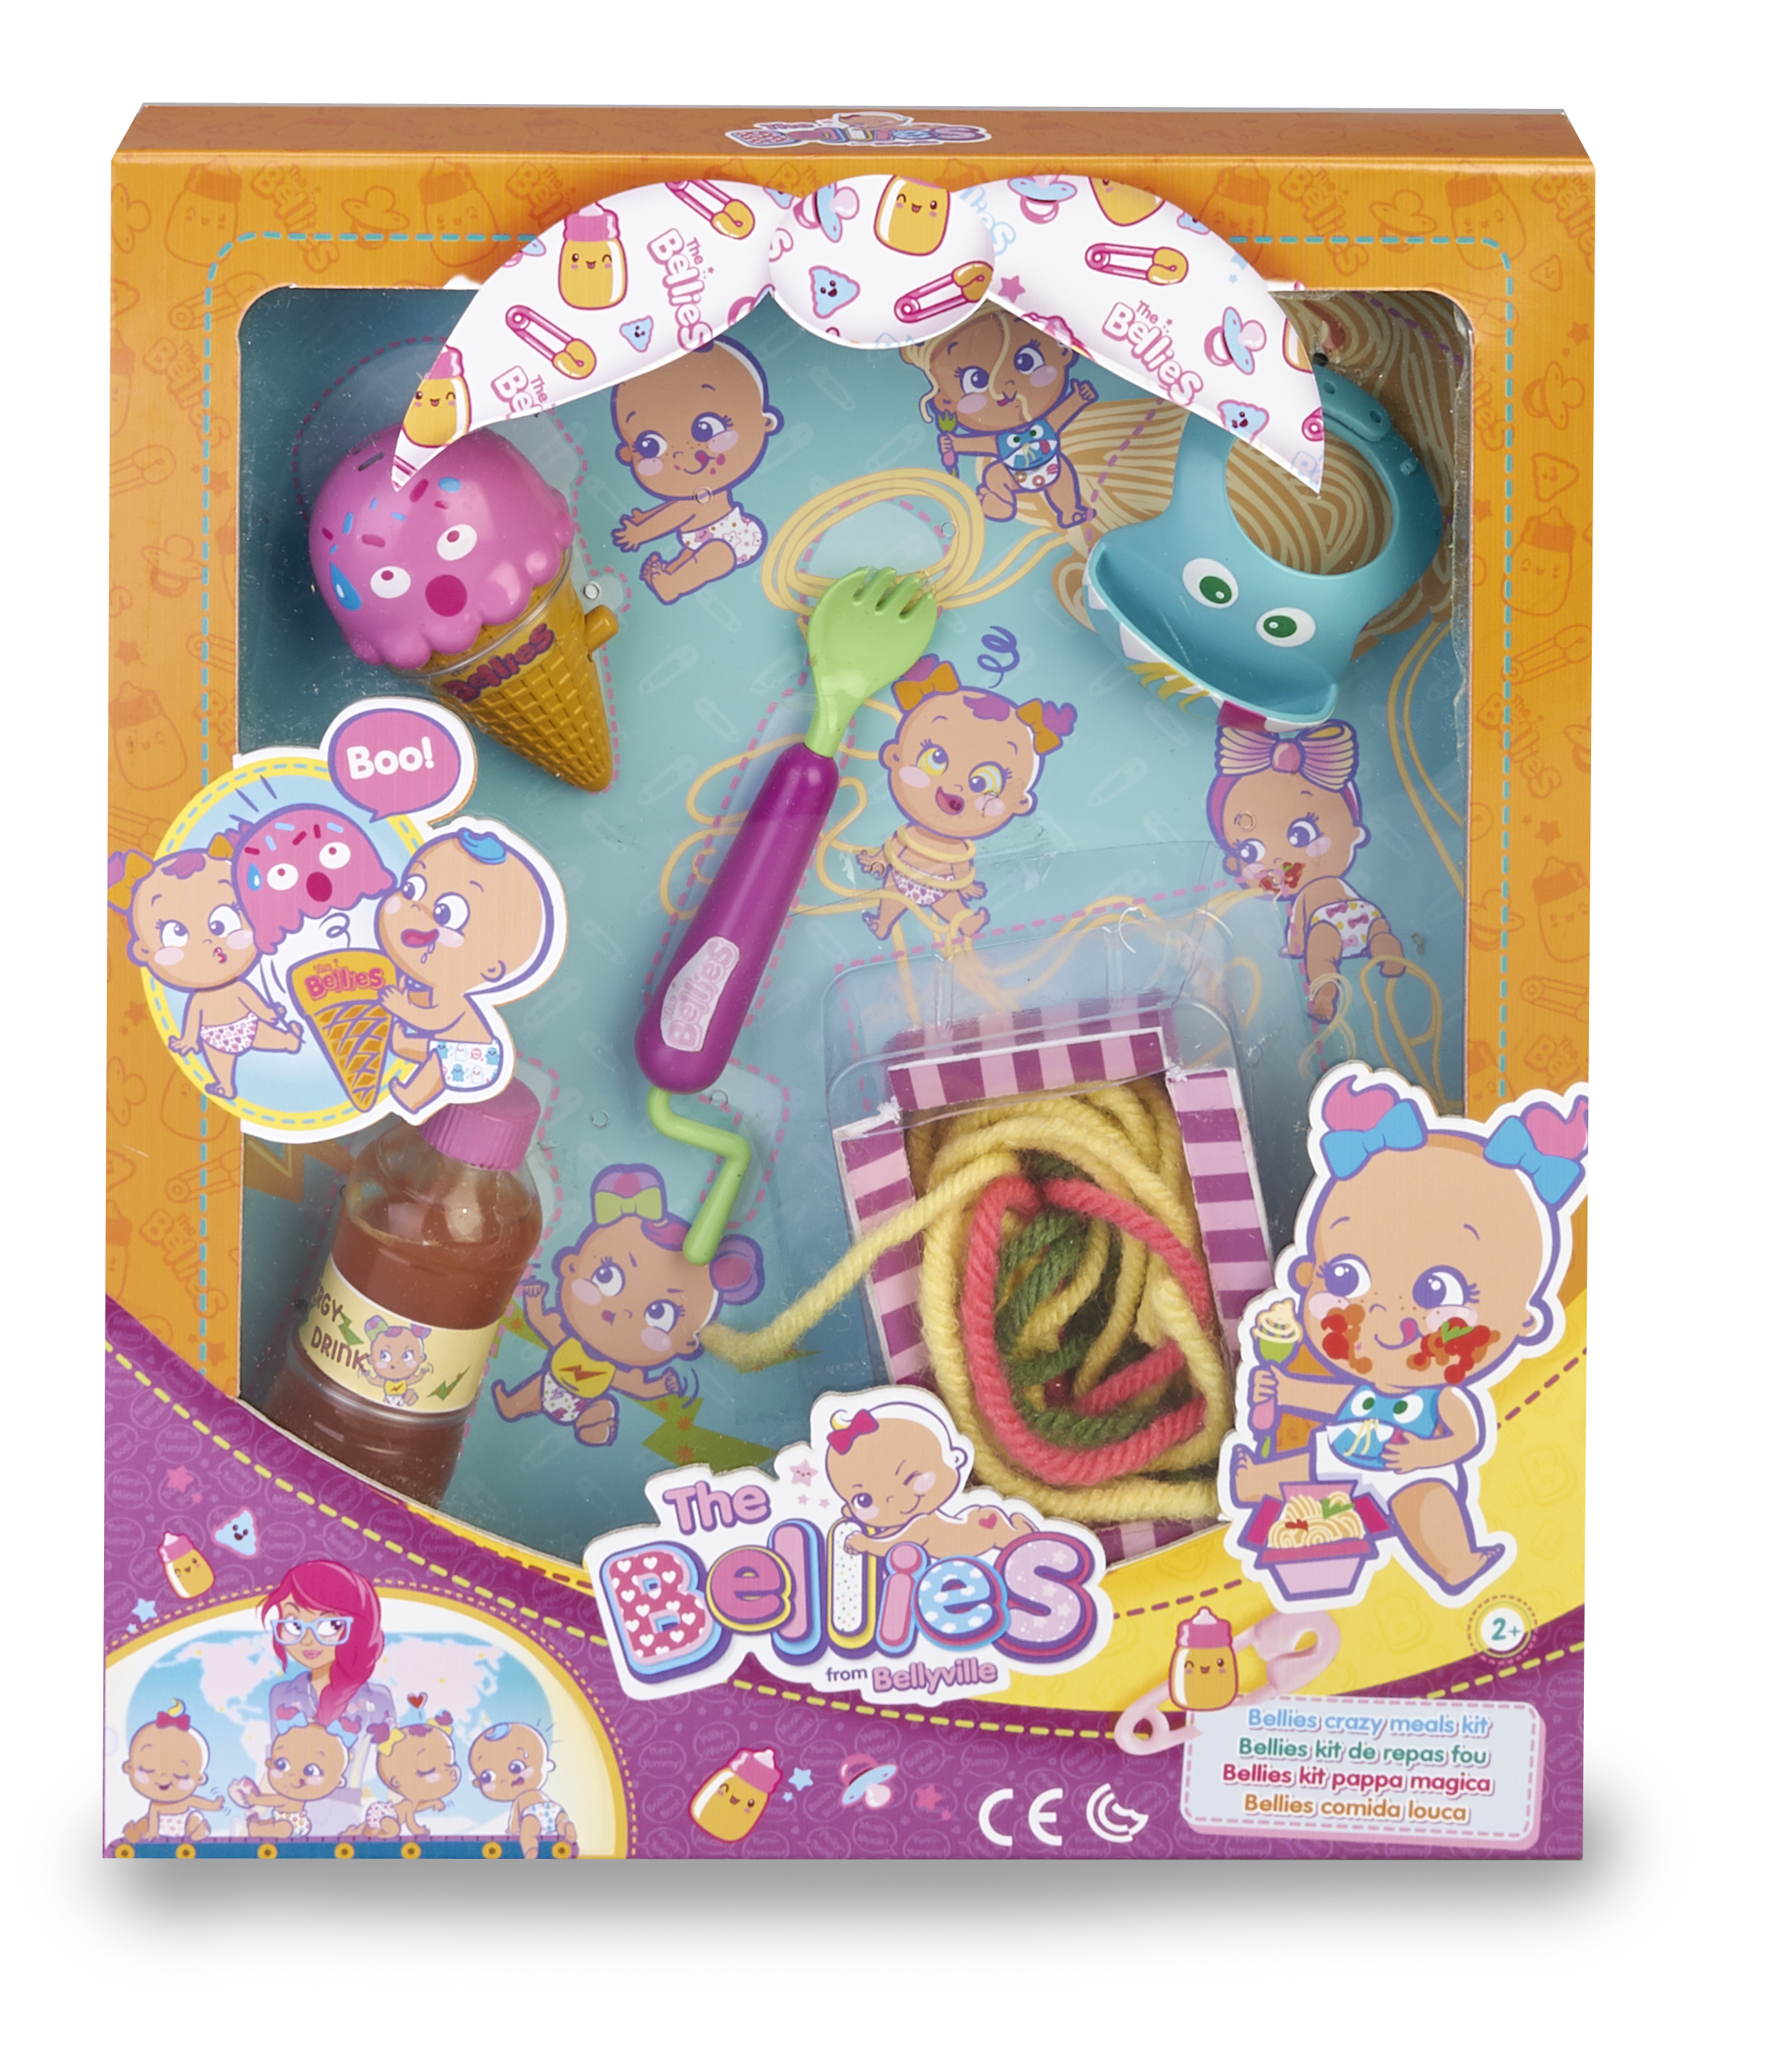 KIT COMIDITA BELLIES 15537